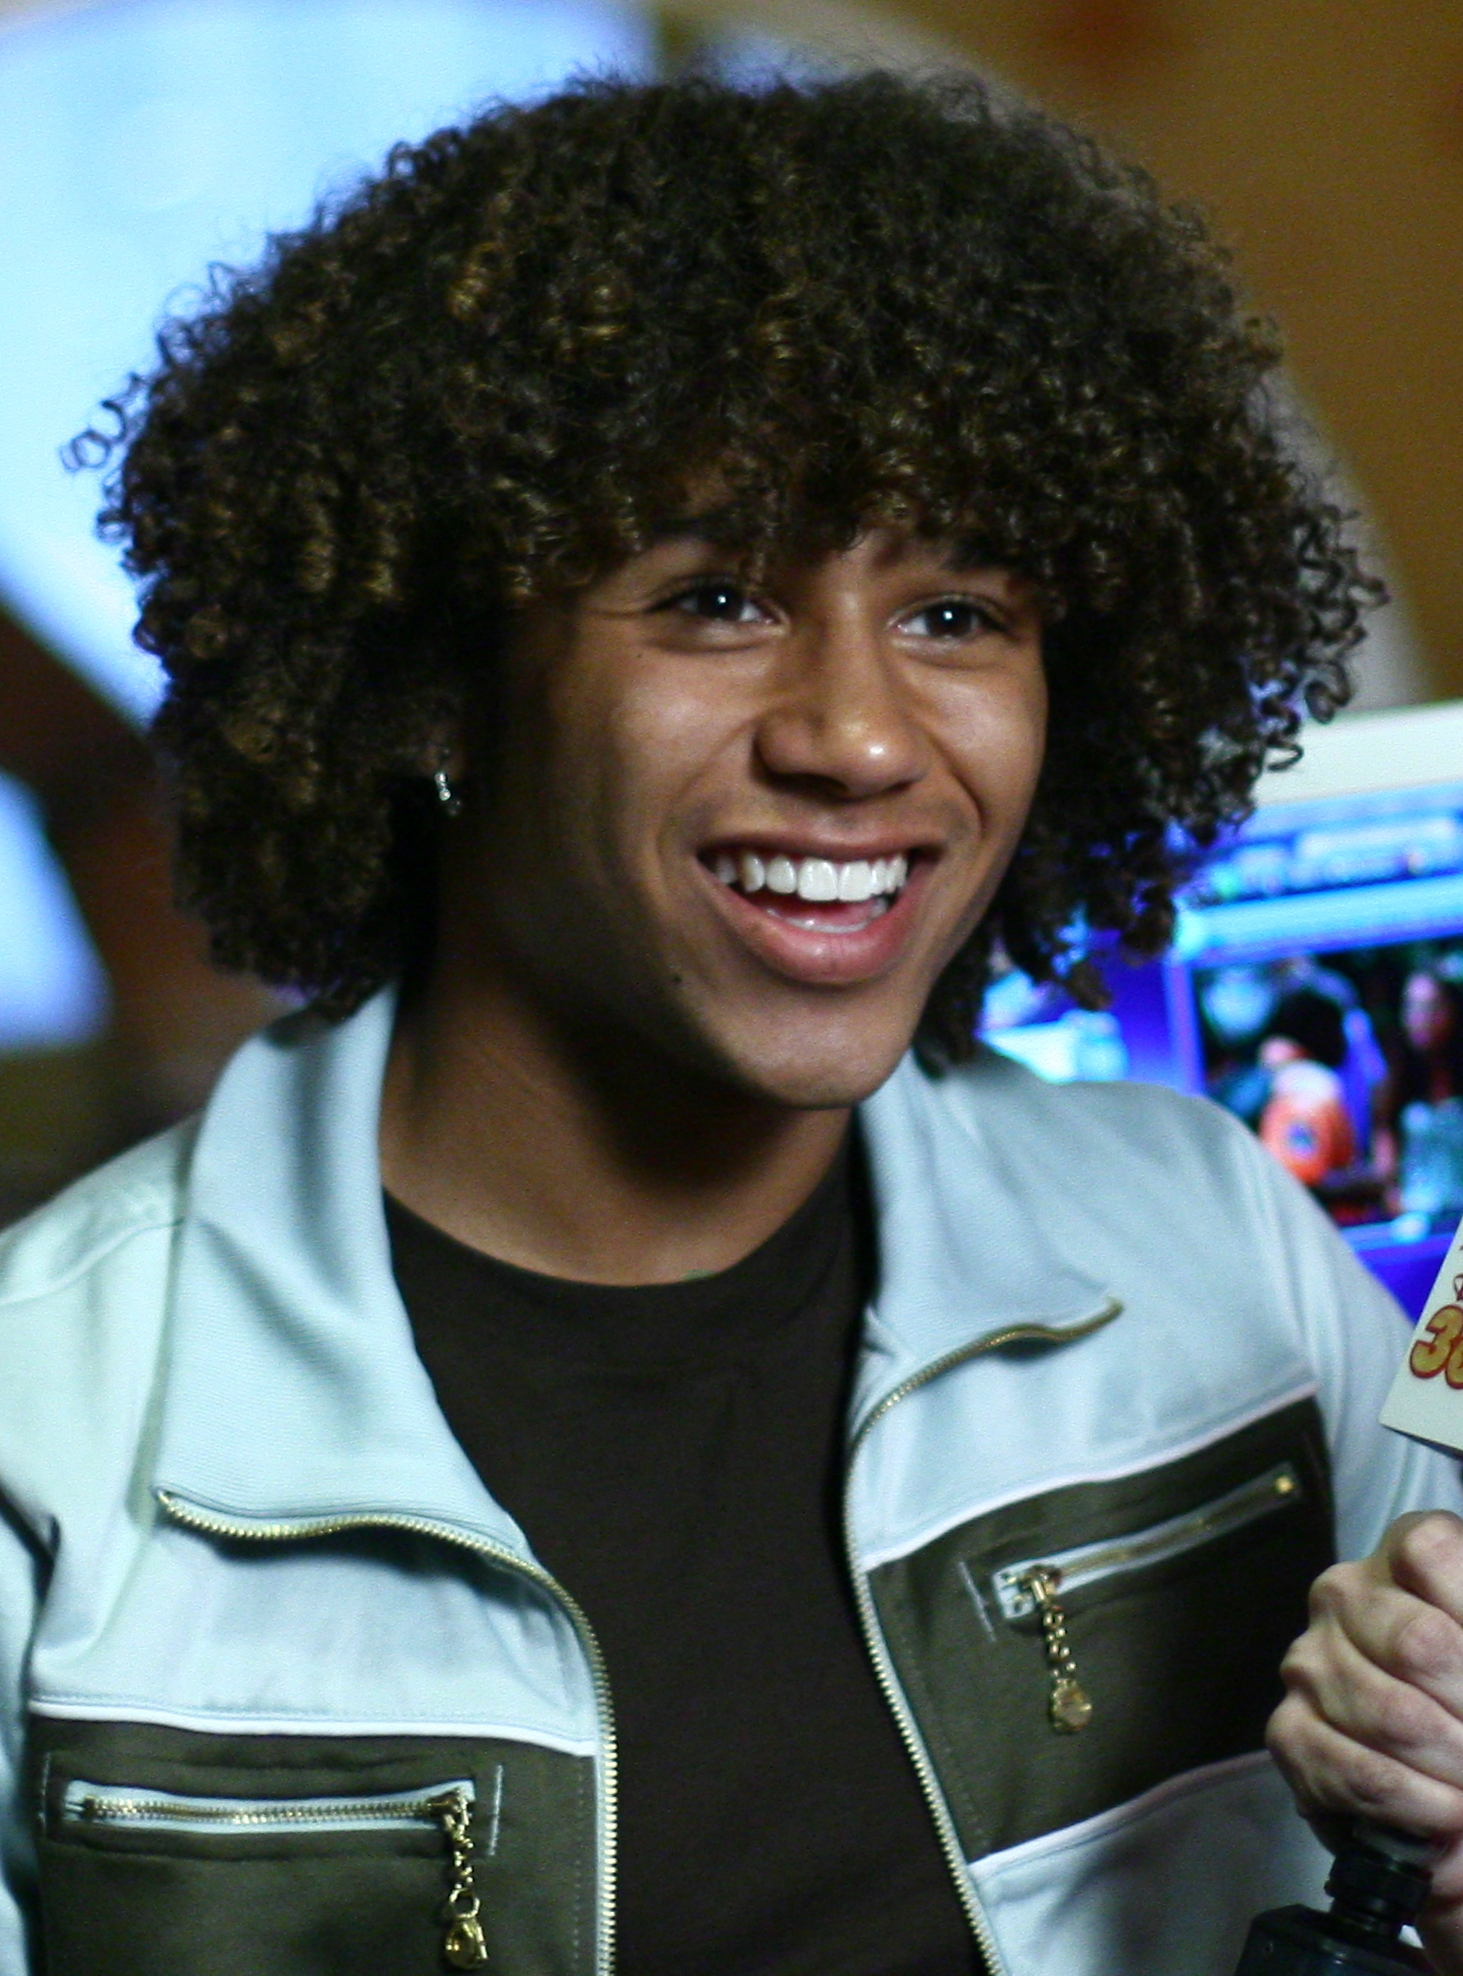 File:Corbin Bleu 4, (Cropped).jpg - Wikimedia Commons